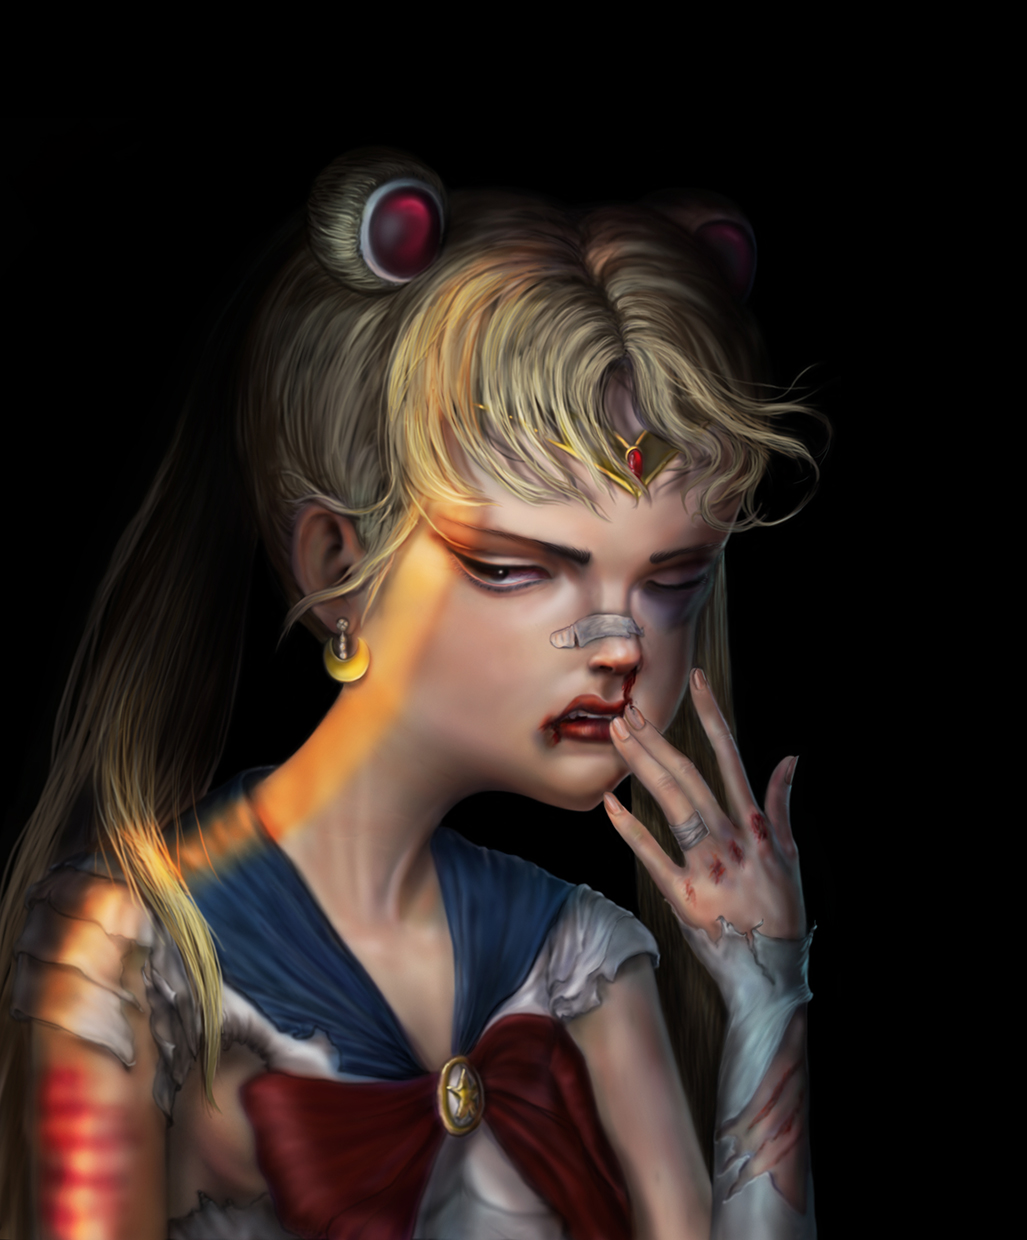 SailorMoon after the battle